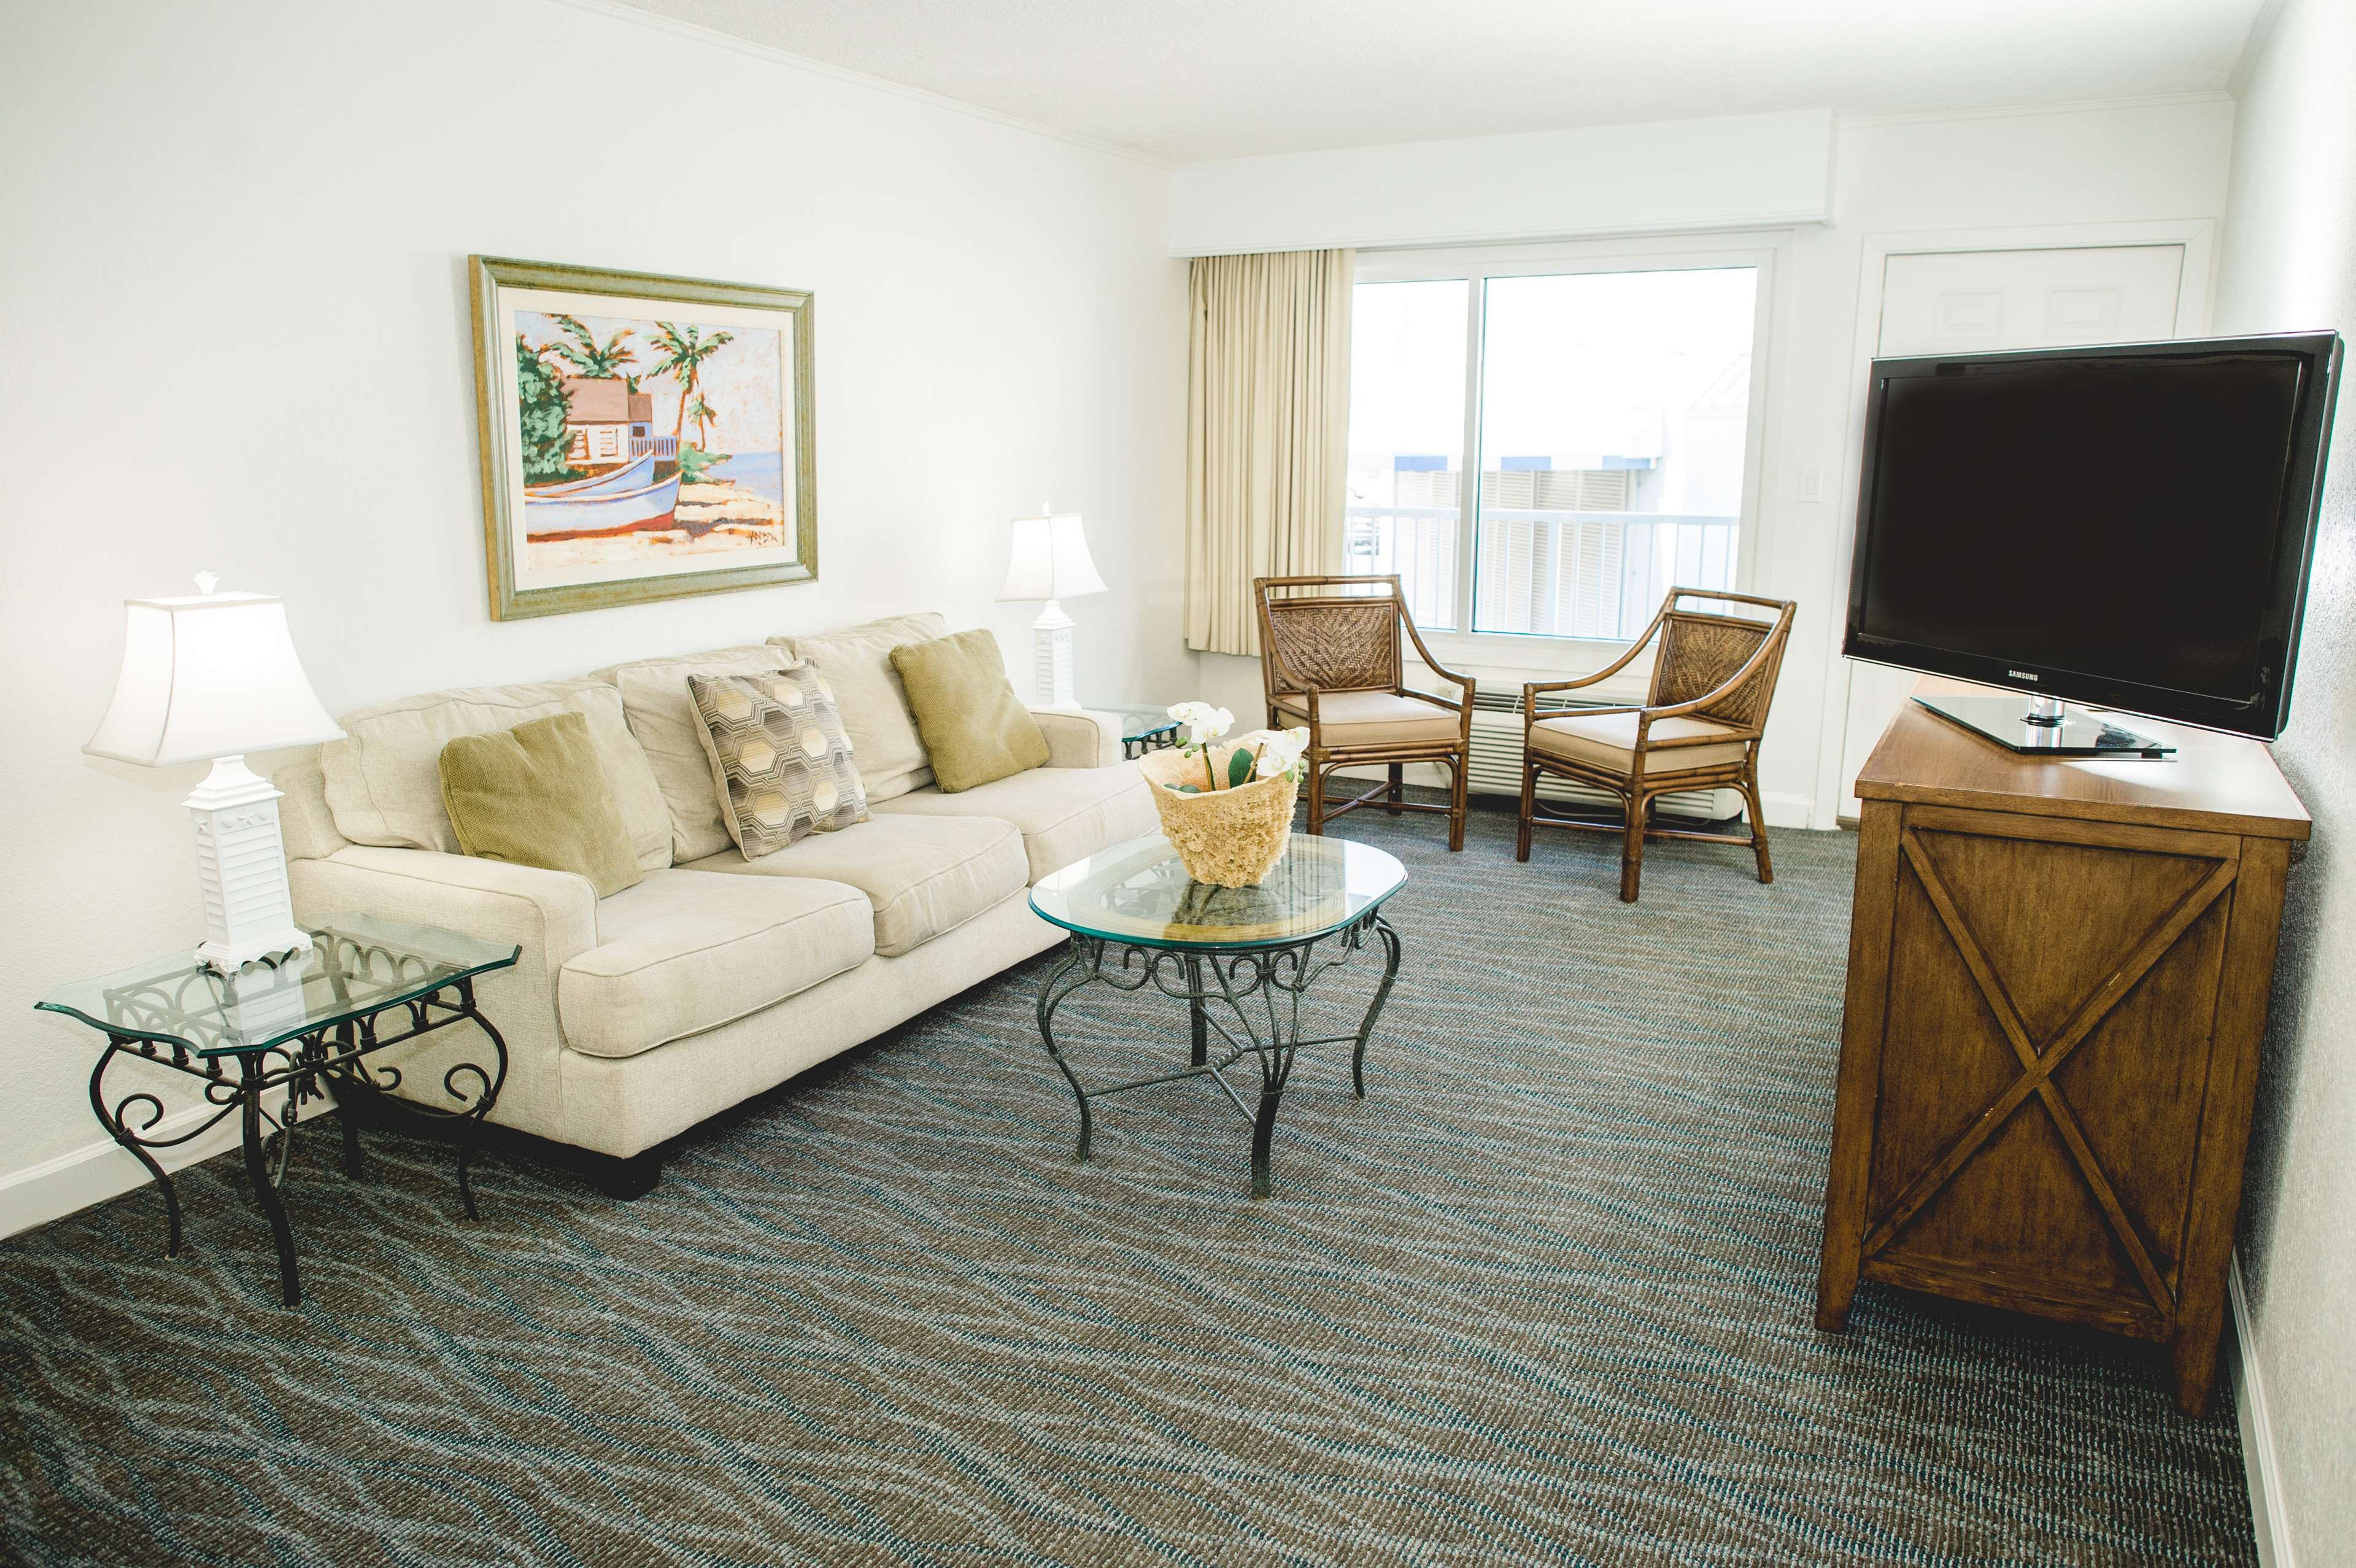 Best Western on the Beach image 34